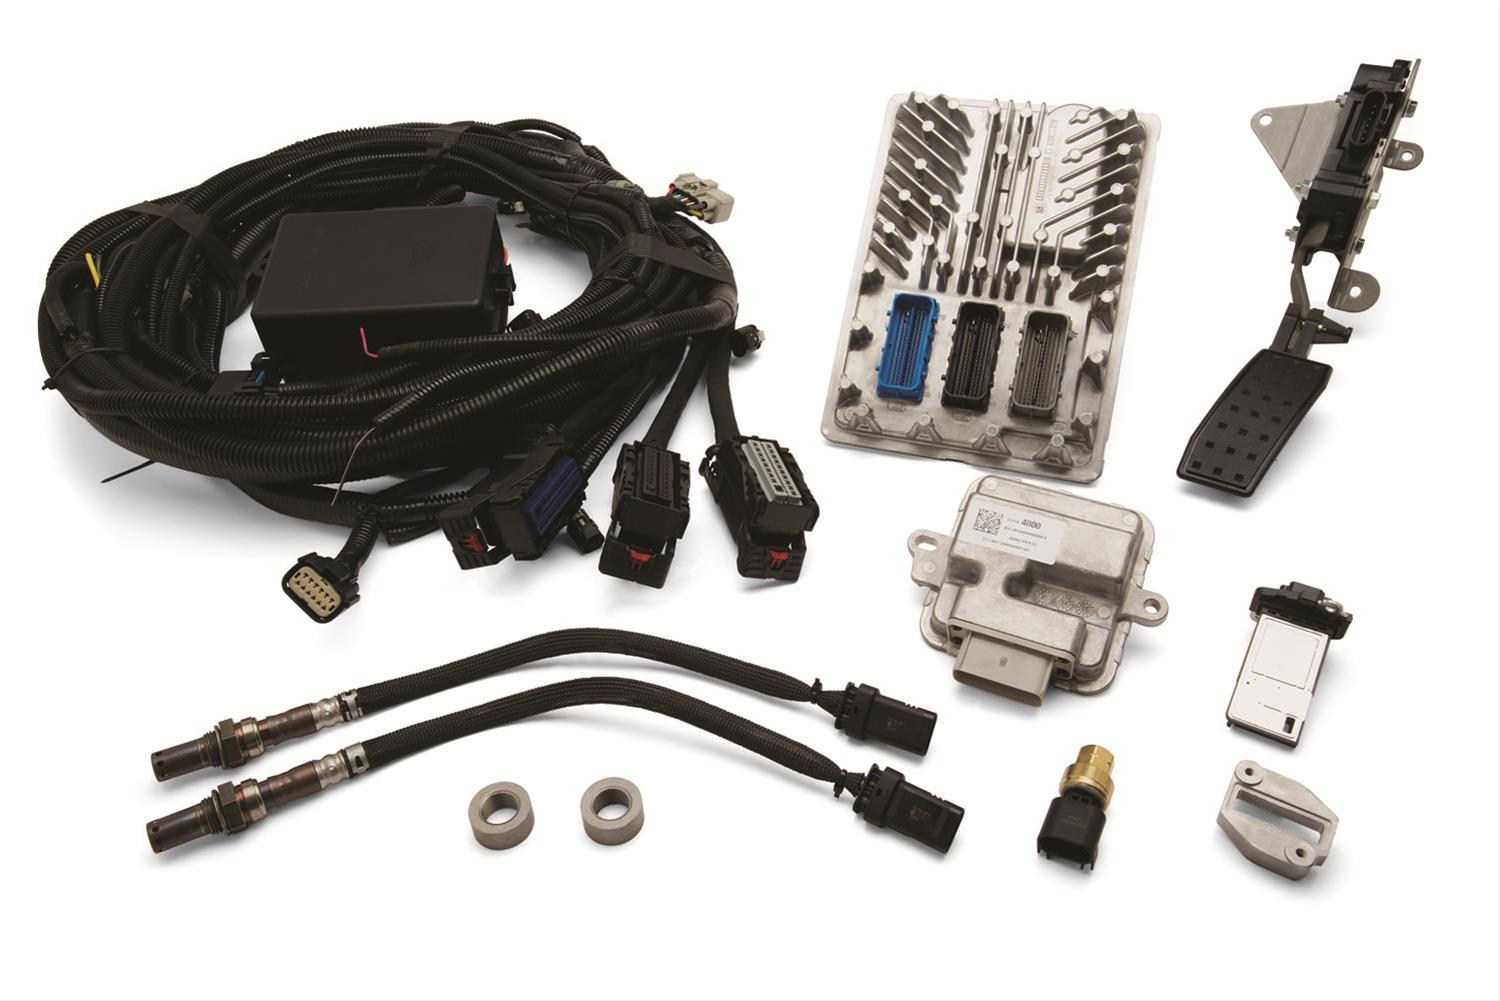 Chevrolet Performance Gen V LT1 Engine Controller Kits 19303137 - Free  Shipping on Orders Over $49 at Summit Racing